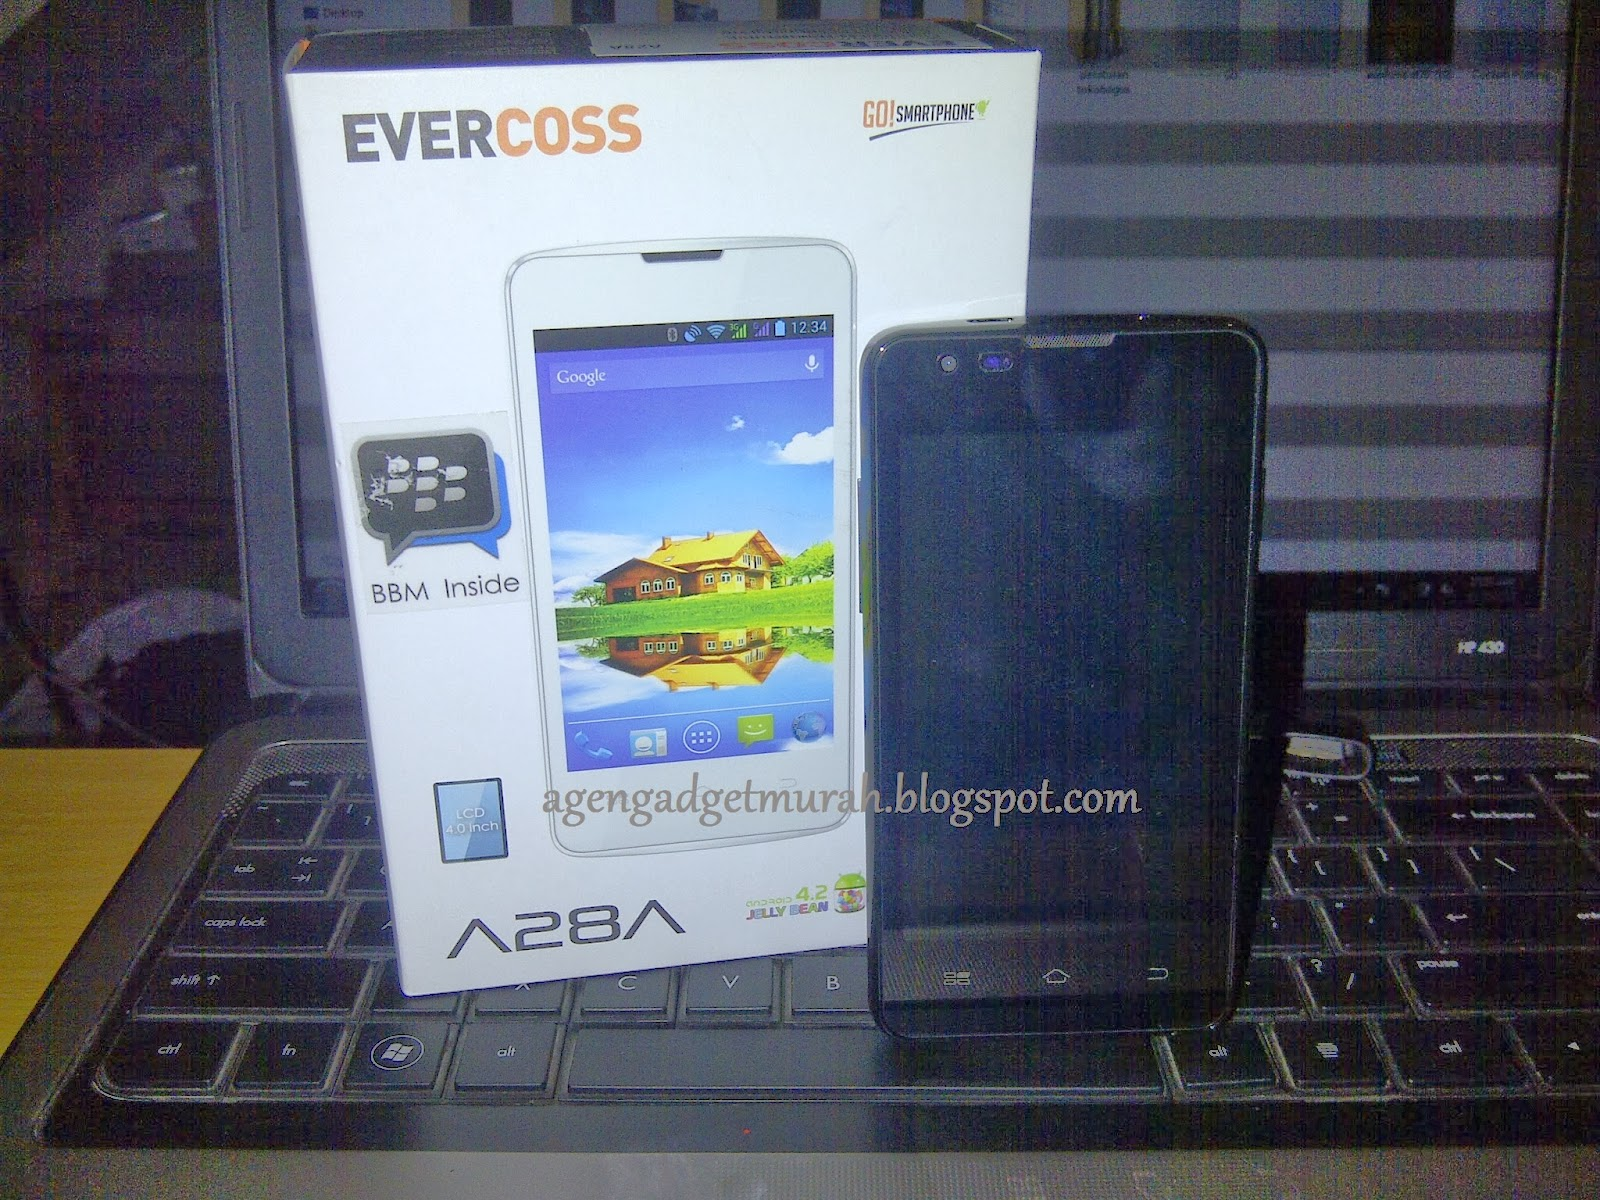 Android Evercoss A28A